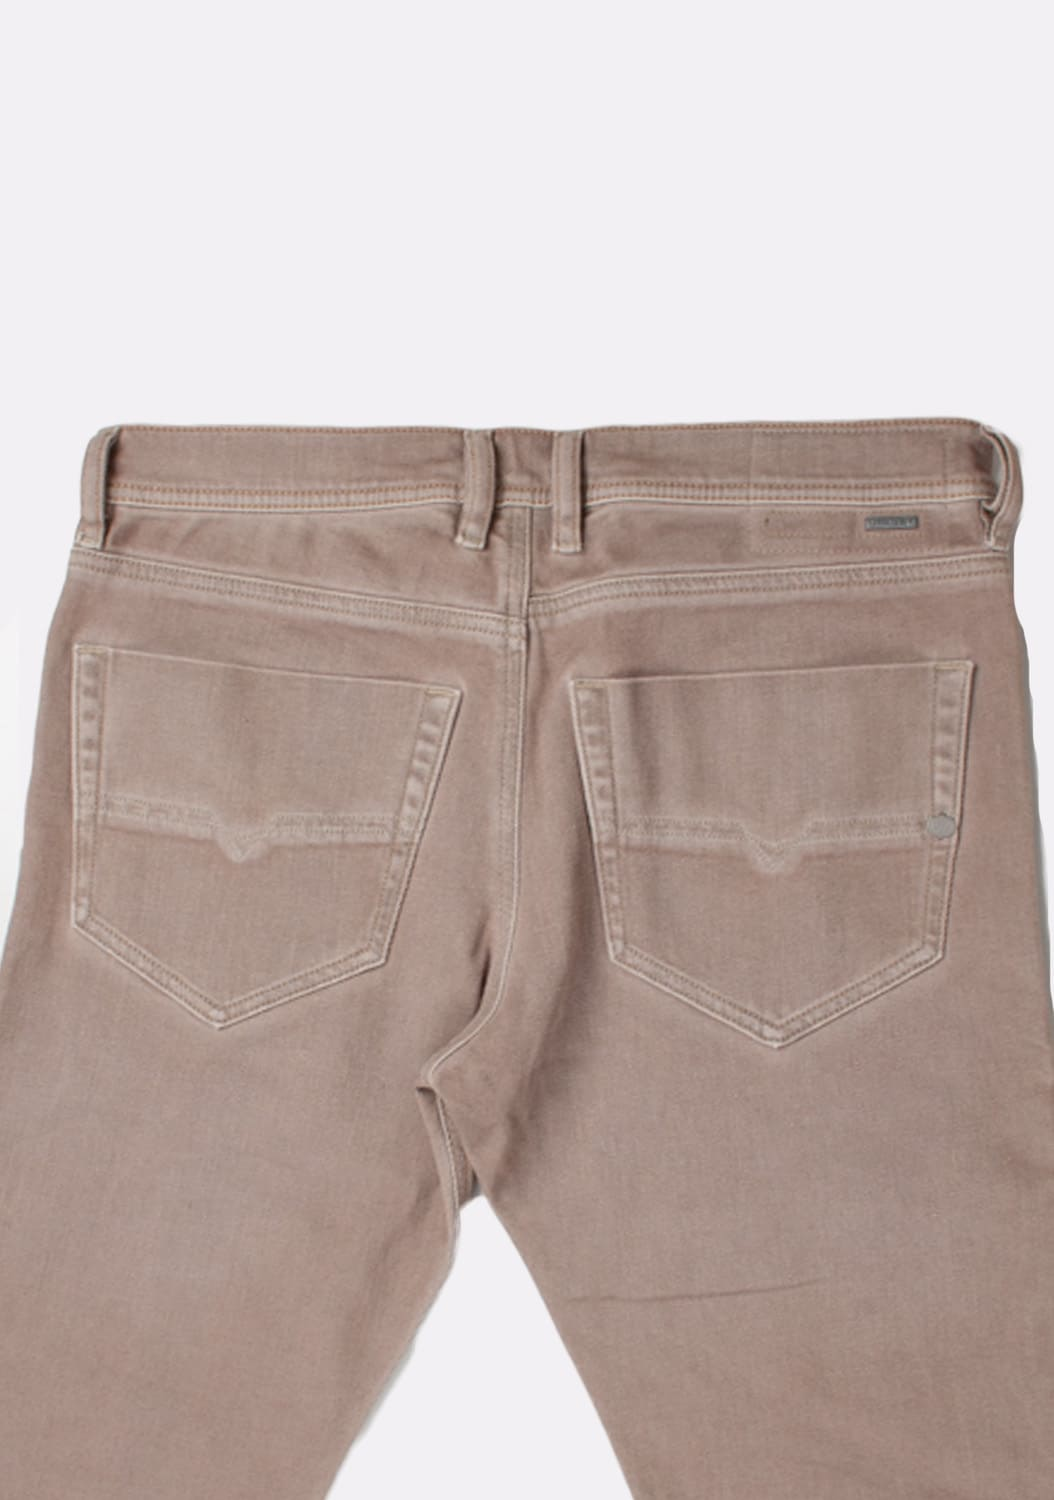 Diesel-Tepphar-0850Y-Stretch-Slim-Carrot-dzinsai-dydis-31 (6)